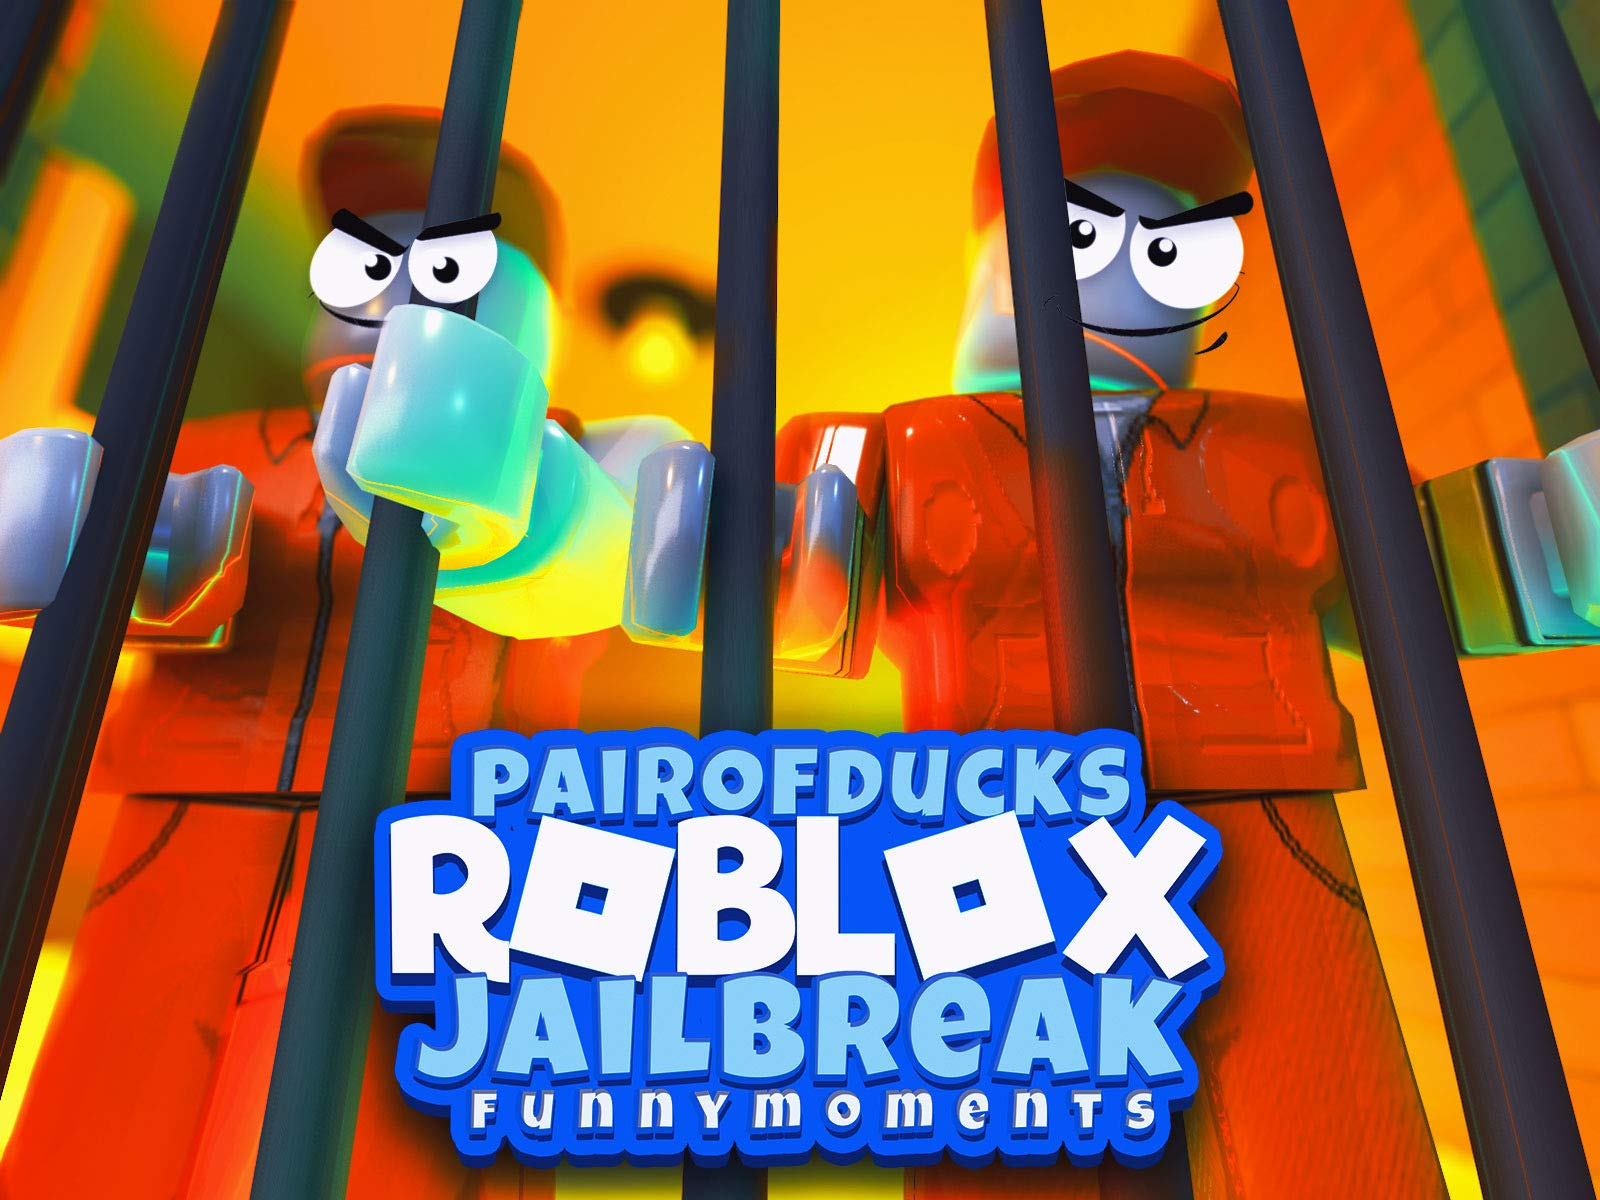 Clip: Roblox Jailbreak (PairOfDucks Funny Moments)